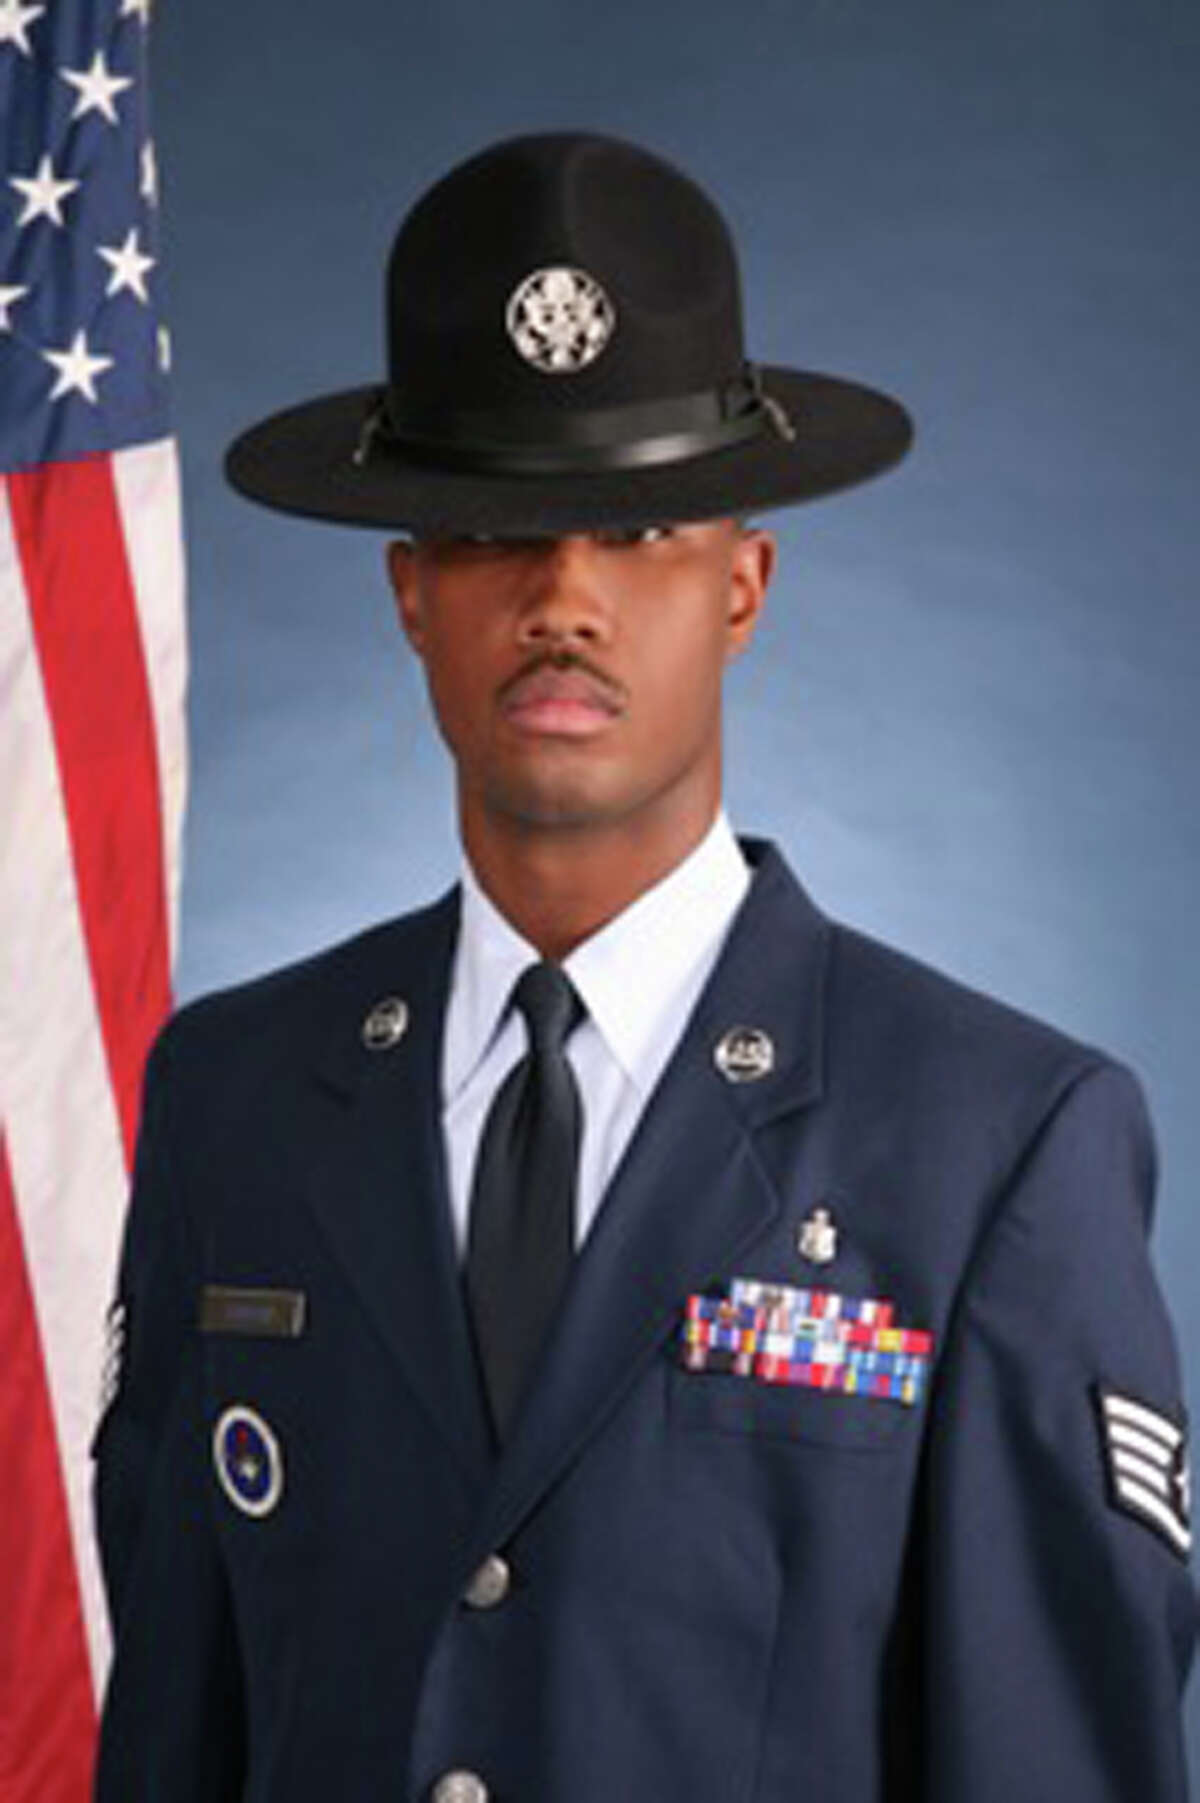 Staff Sgt. Christopher T. Jackson is one of 25 basic training instructors under investigation at Lackland.